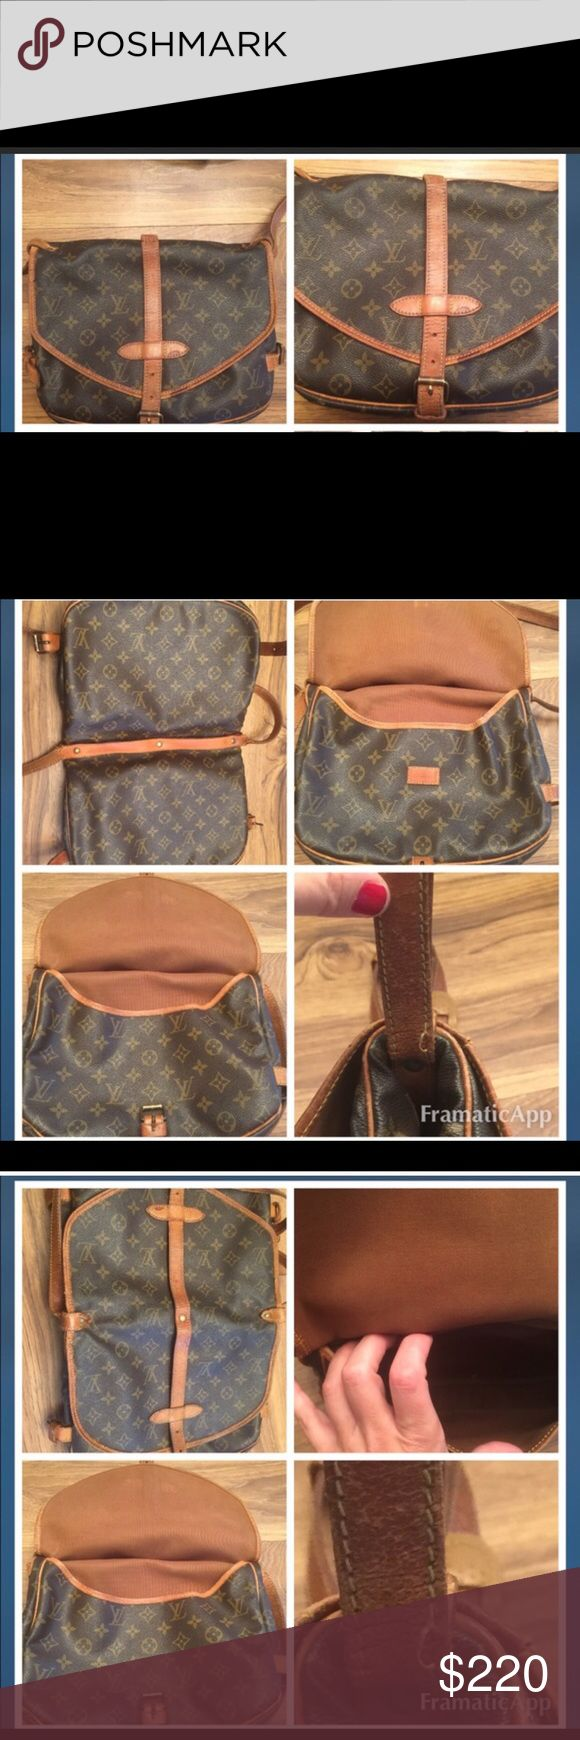 Louis Vuitton Saumur 30 🌺offers welcome🌺 Louis Vuitton Saumur 30. Loved purse. Leather is in excellent condition. No holes, stains etc. one side of the strap will need to be re-sewn (please see last picture) you can have it done at a Louis Vuitton store or you can have it sliced and done at a leather store (less then $30 at leather store) I have not done it through the leather gentleman as I want to give the buyer the choice. Smoke free home. No odors. Priced accordingly. Please feel free…